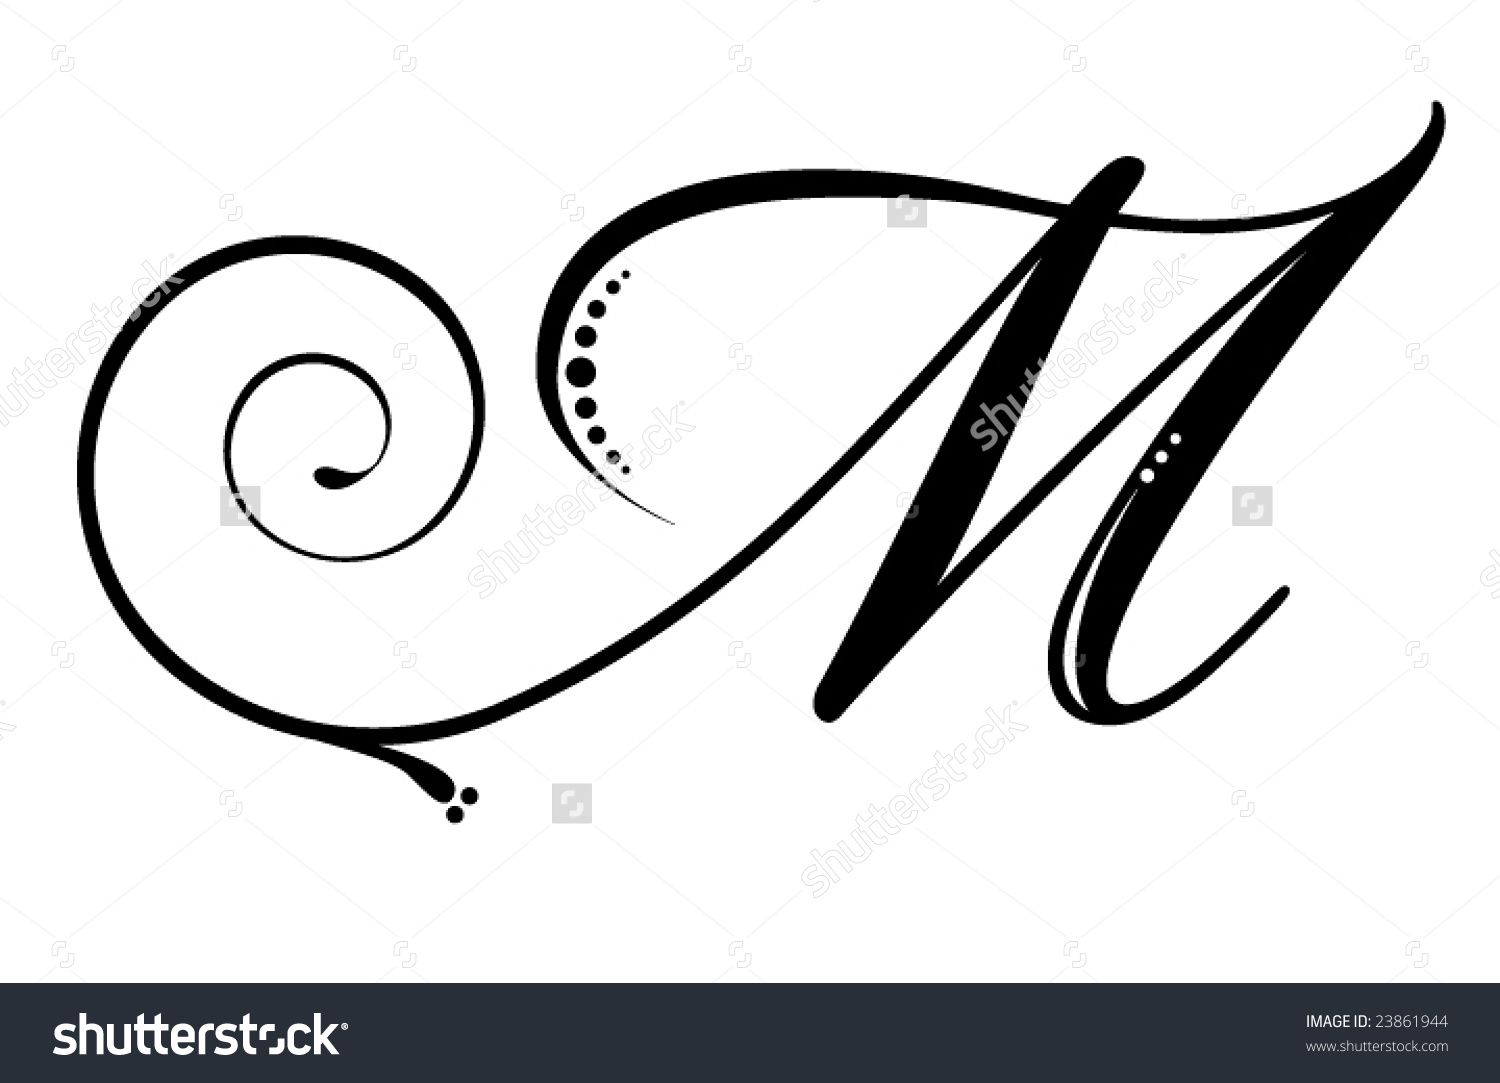 Letter M Stock Photos, Images, & Pictures | Shutterstock ...